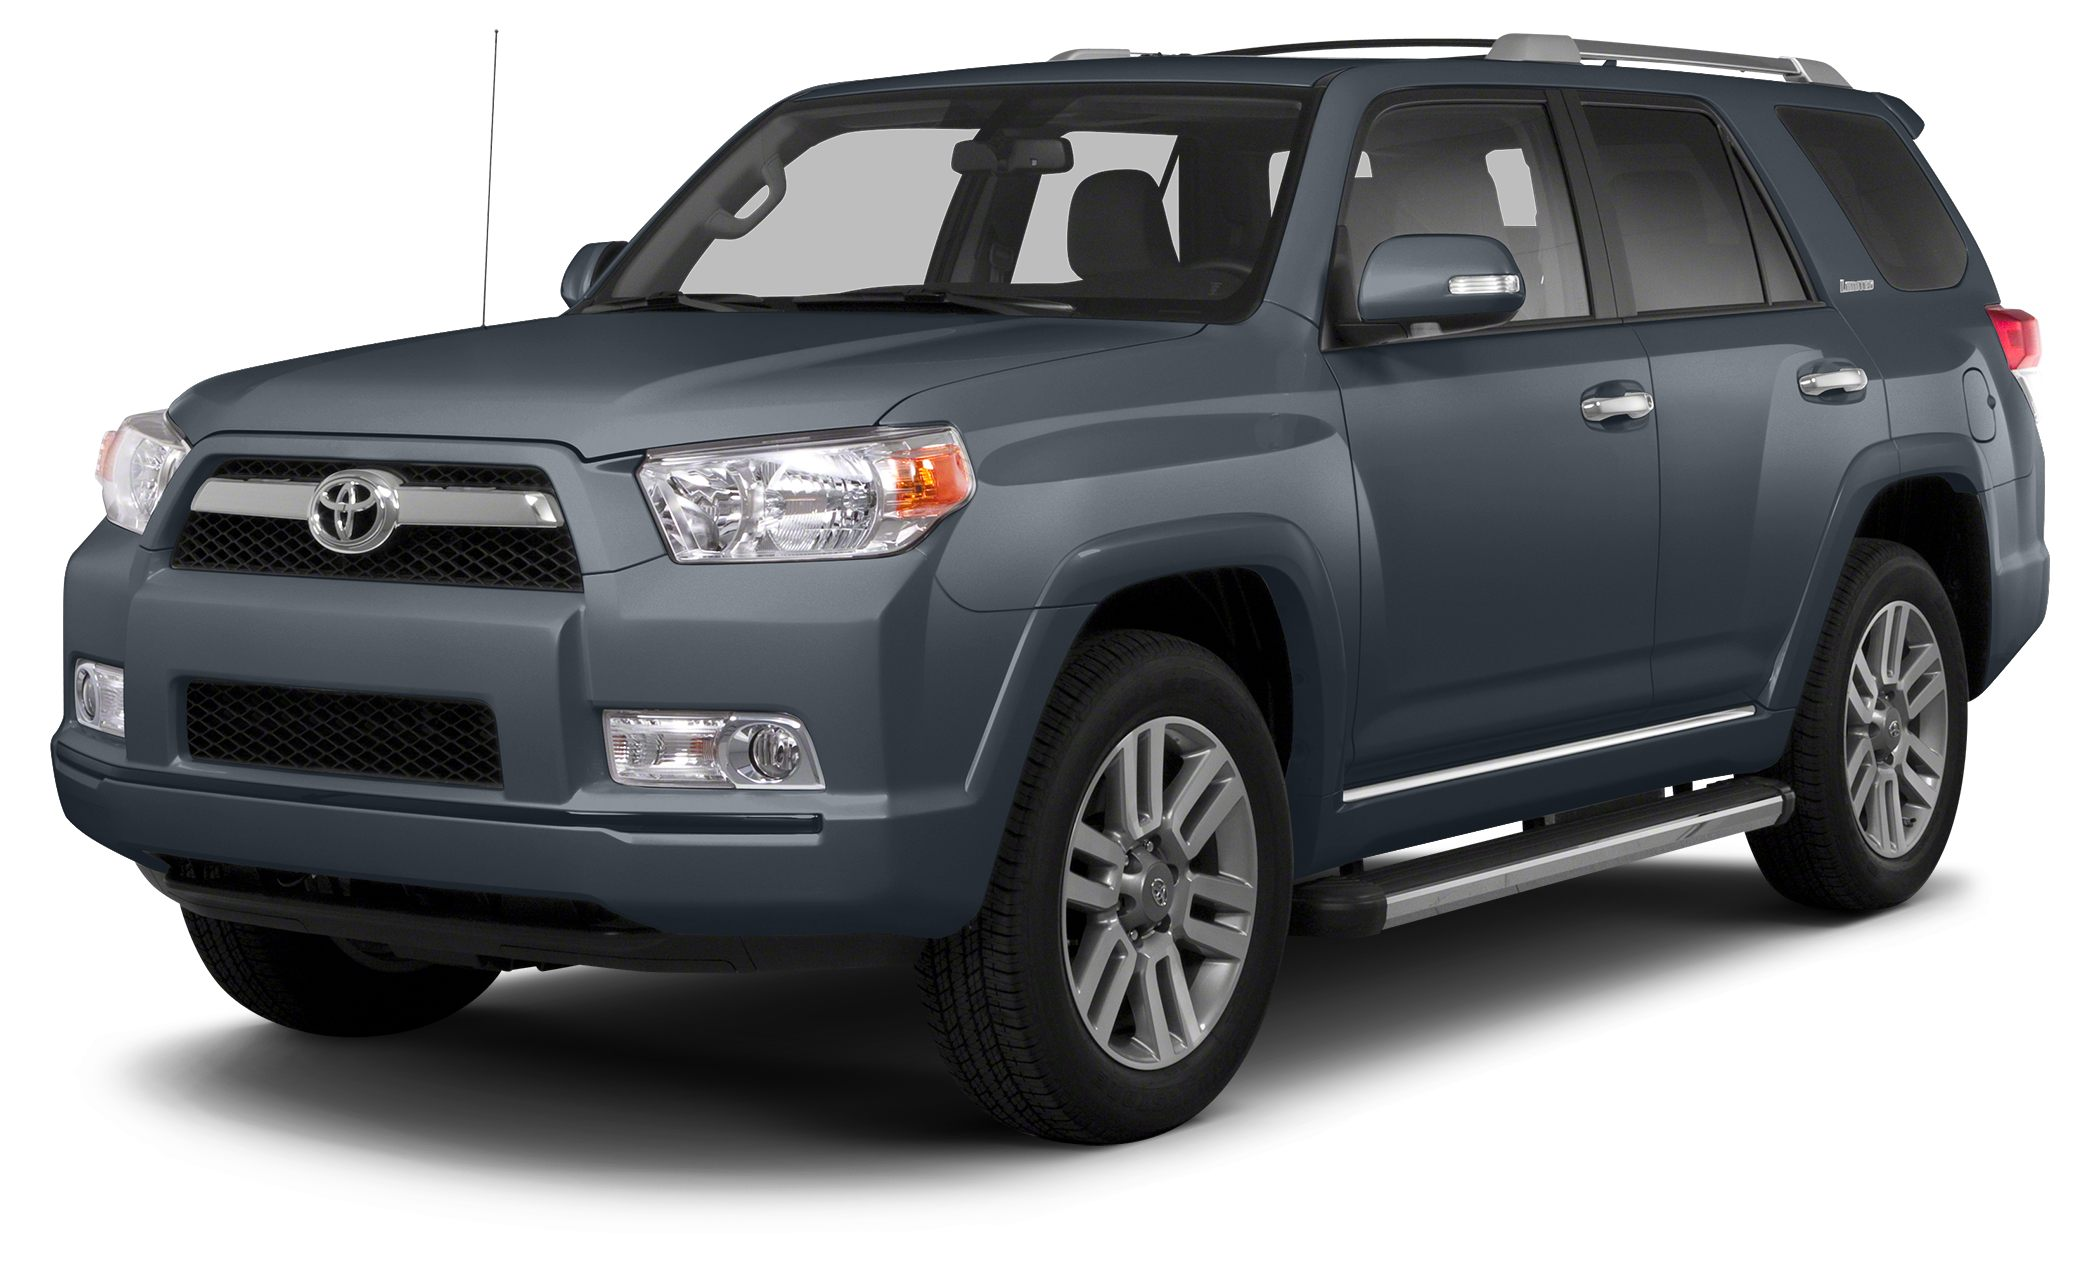 2013 Toyota 4Runner Limited Prices are PLUS tax tag title fee 799 Pre-Delivery Service Fee a